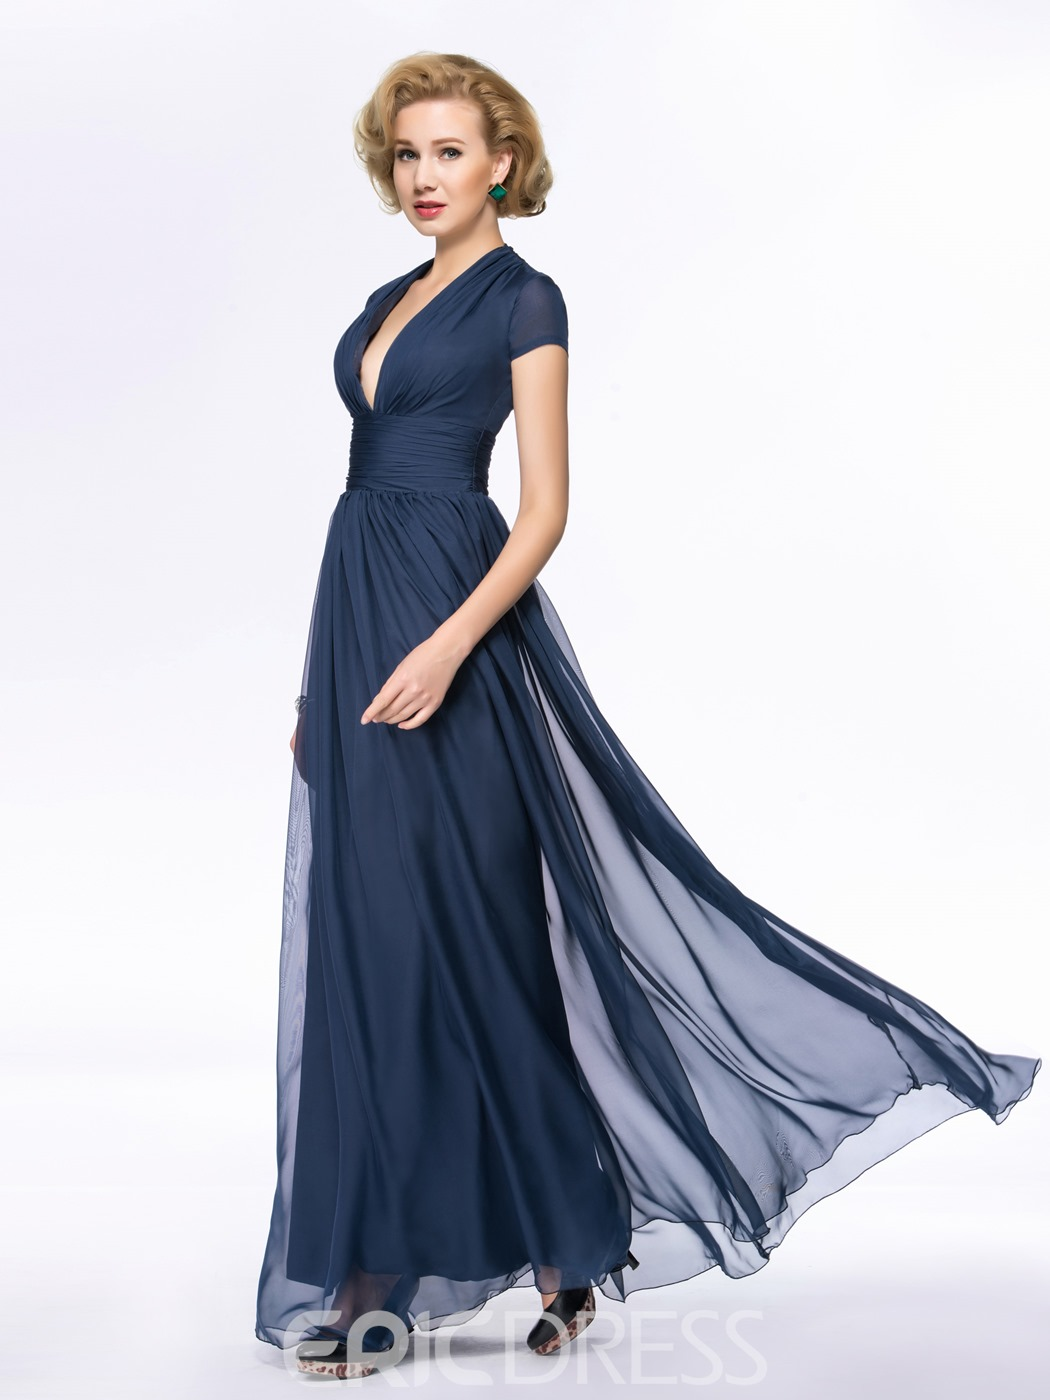 Classy V-Neck A-Line Floor Length Zipper-Up Mother Of the Bride Dress